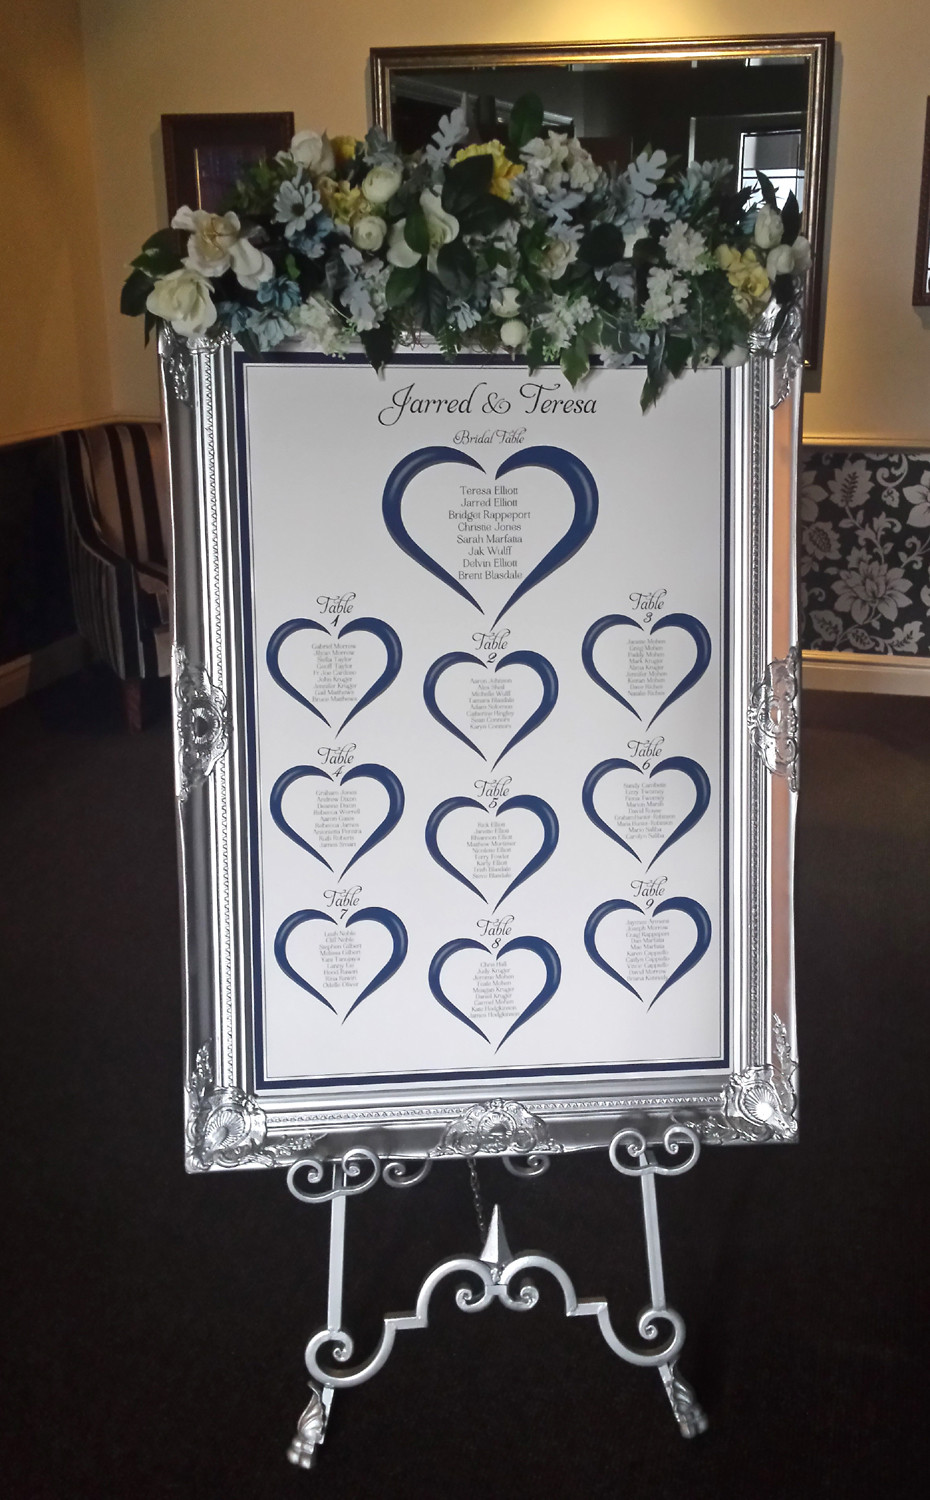 Seating Plan Design in Silver Venetian Frame and Silver Wrought Iron Easel